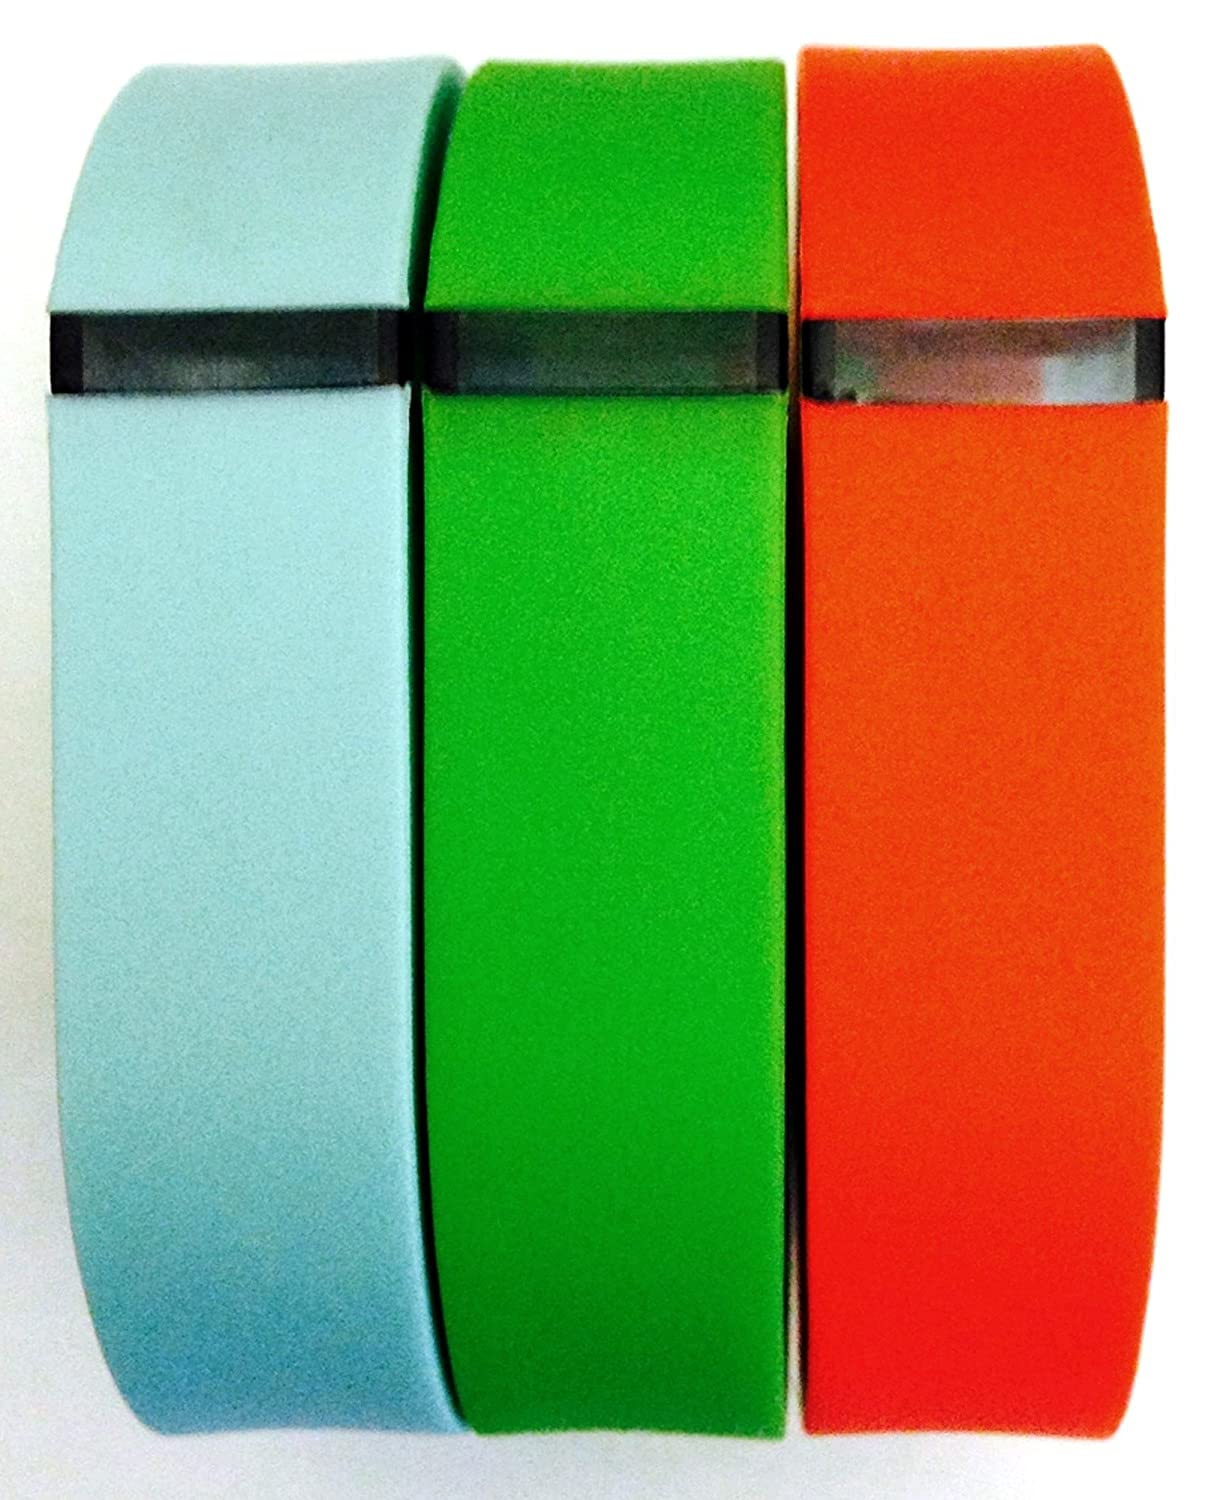 Small S 1pc Green 1pc Teal (Blue/Green) 1pc Red (Tangerine) Replacement Bands + 1pc Free Small Grey Band With Clasp for Fitbit FLEX Only /No tracker/ Wireless Activity Bracelet Sport Wristband Fit Bit Flex Bracelet Sport Arm Band Armband